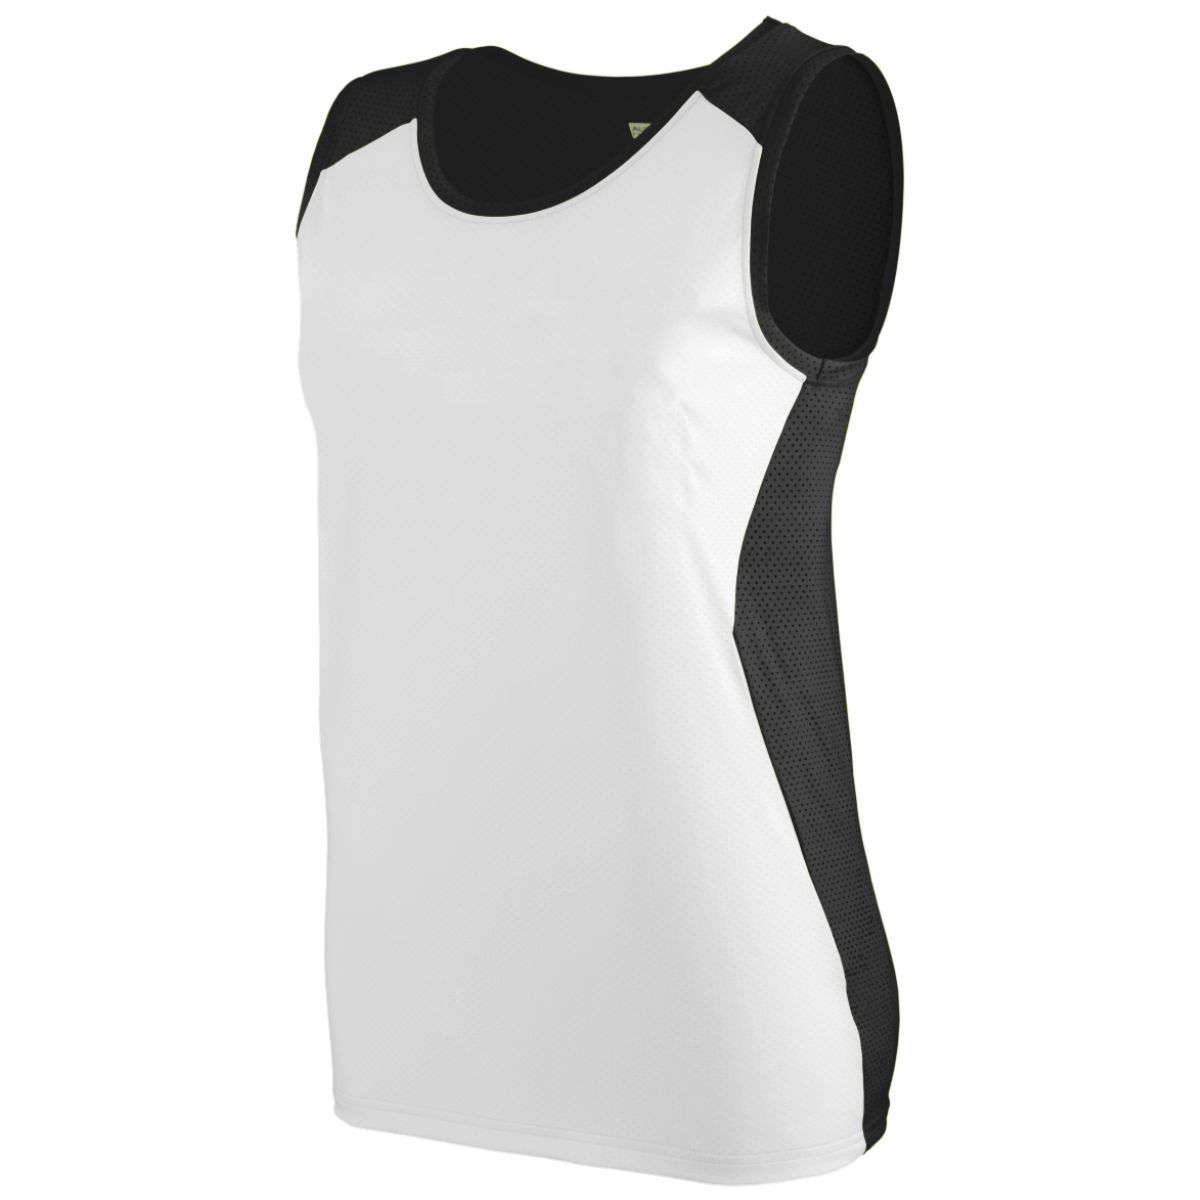 Ladies Alize Jersey - BLACK/WHITE